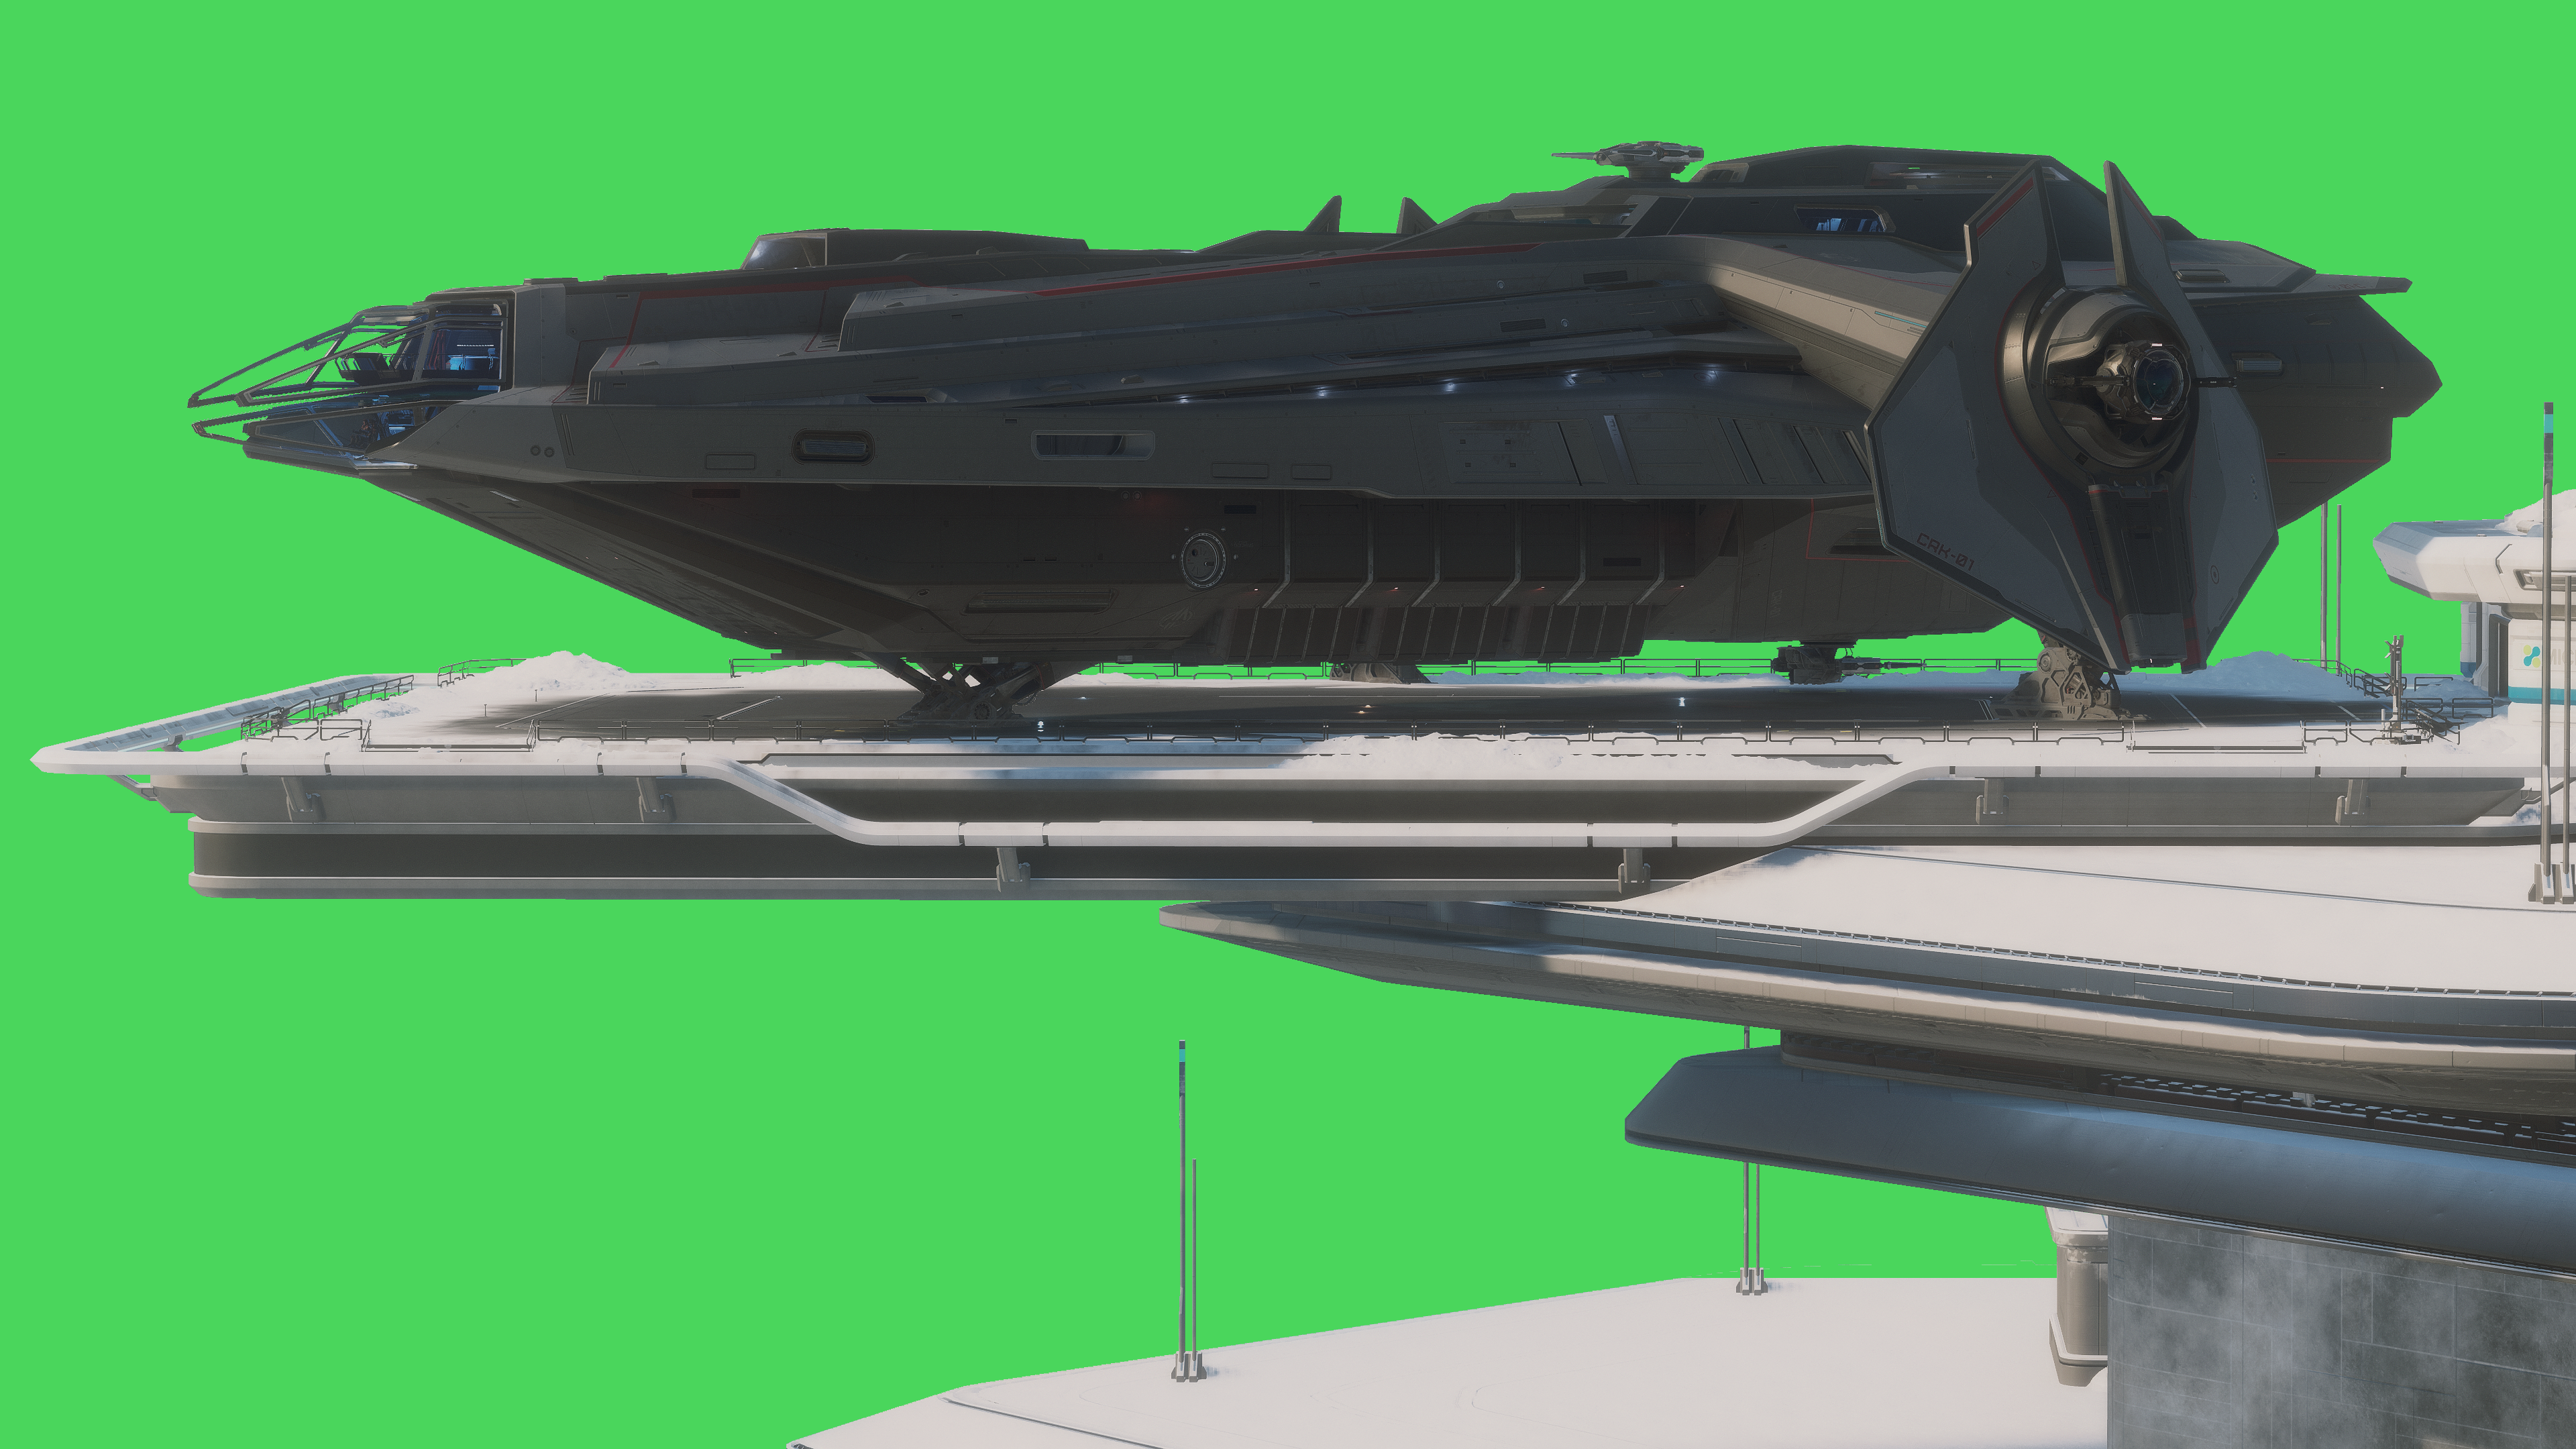 SC-3.9 20200519 115659 carrack greenscreen